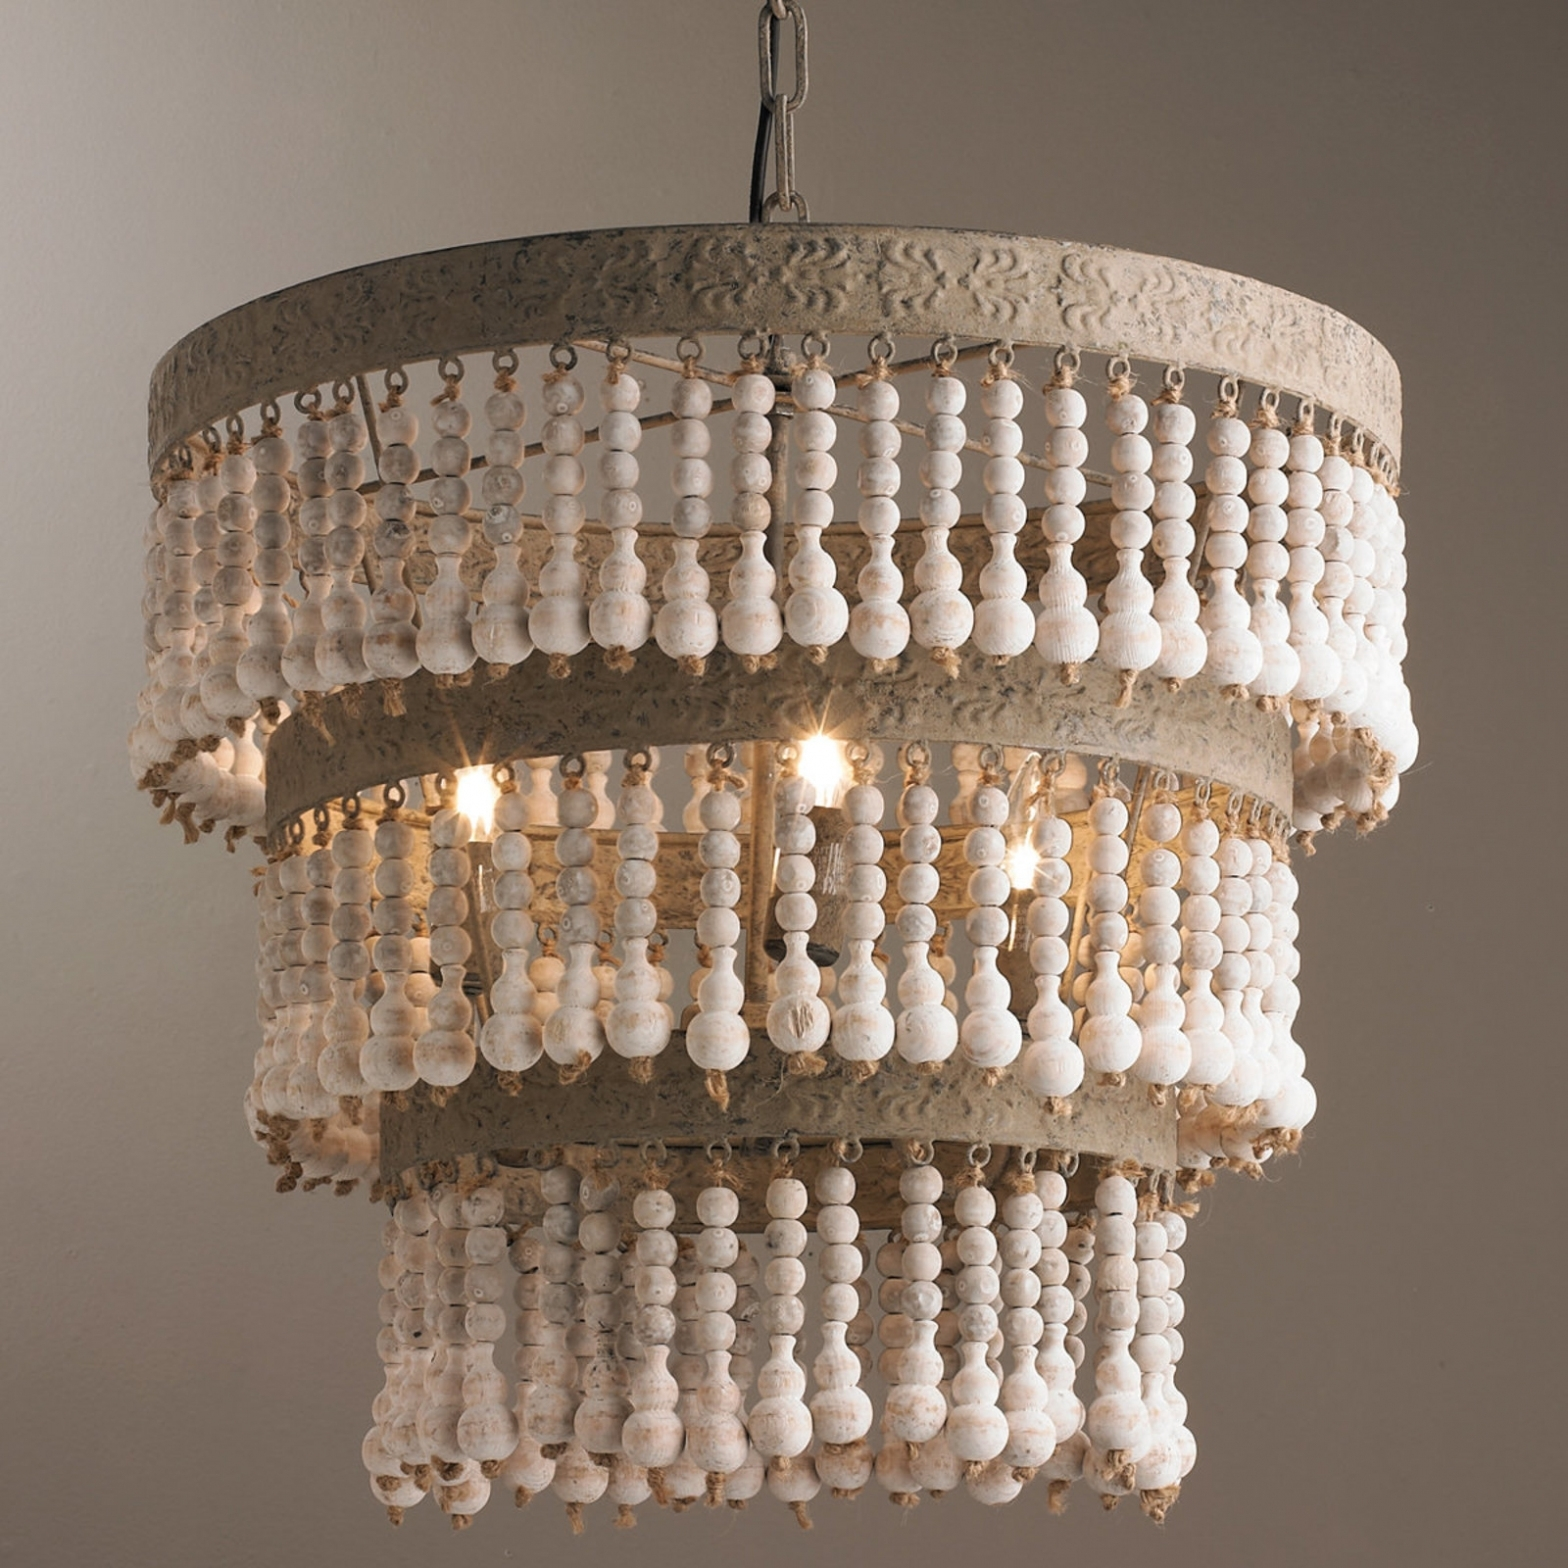 Newest Lighting ~ Chandeliers ~ Turquoise Beaded Chandelier Light Fixture Regarding Turquoise Wood Bead Chandeliers (View 6 of 15)